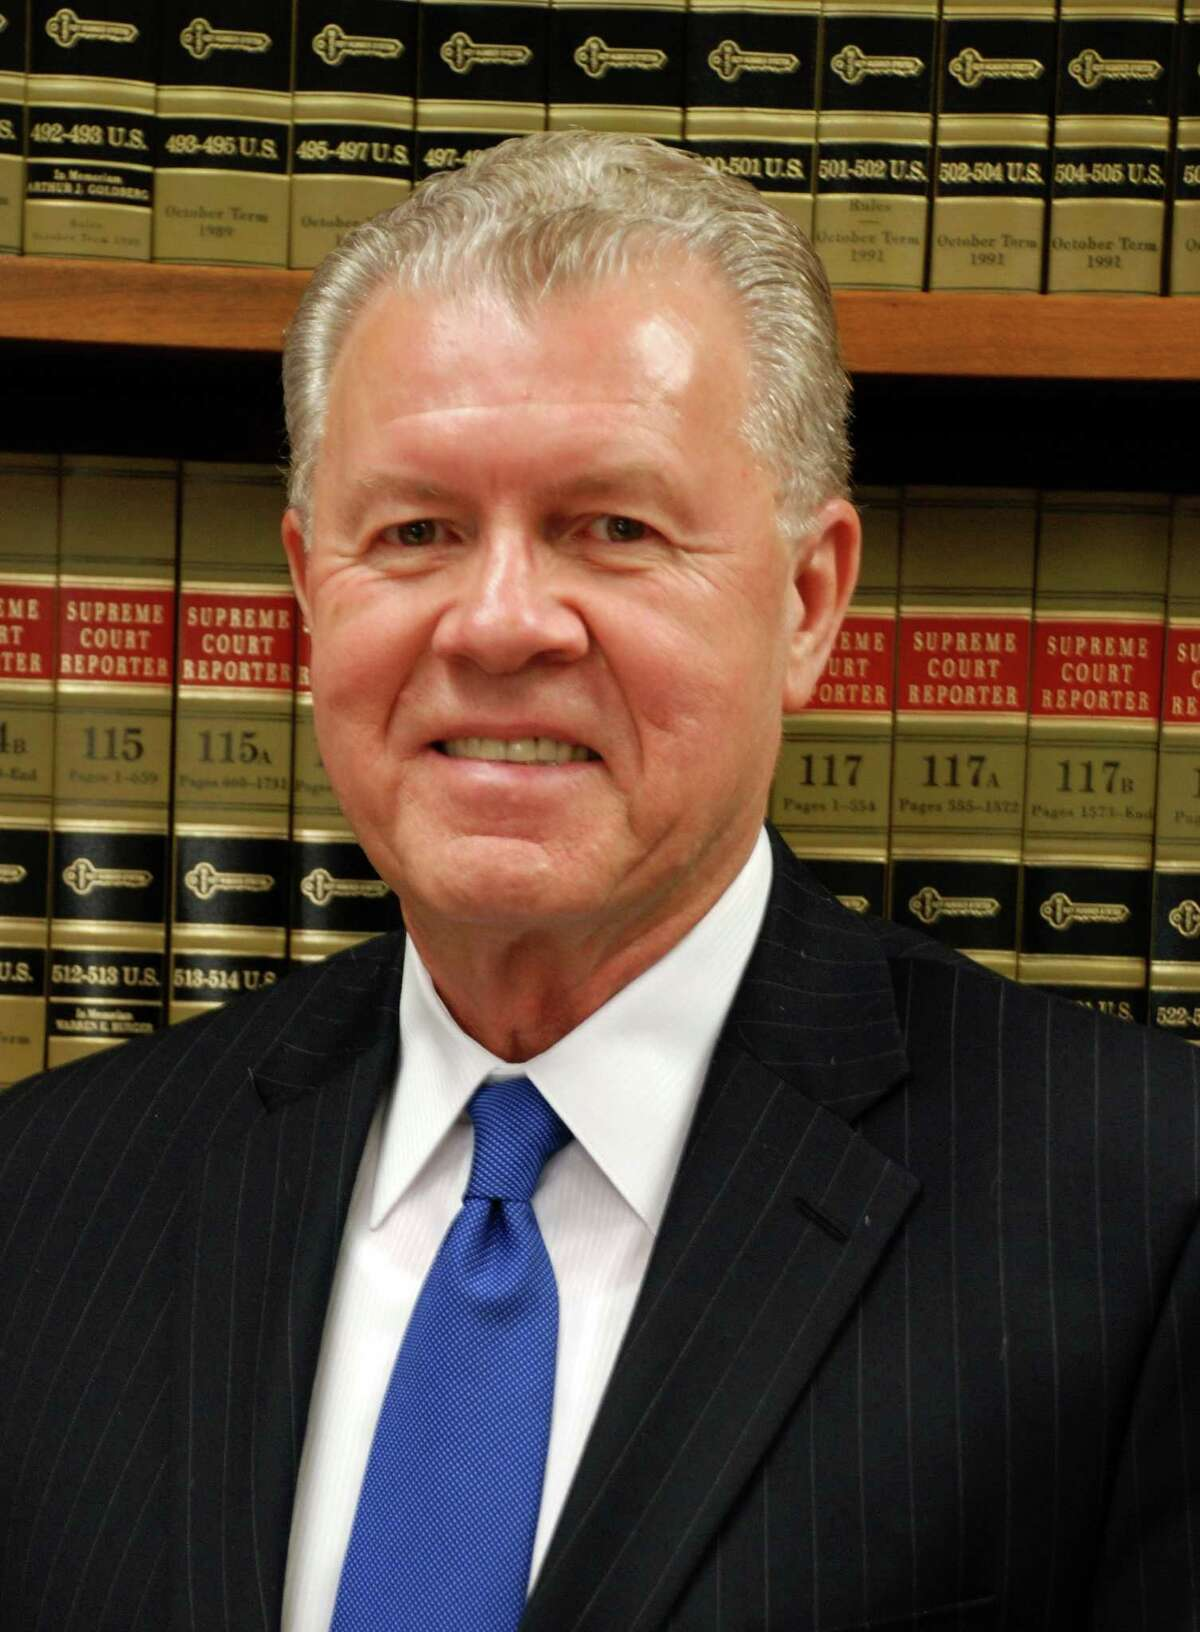 U.S. District Judge Carl Barbier apportioned a third of the fault for the 2010 Deepwater Horizon disaster to BP, 30 percent to Transocean and 3 percent to Halliburton.